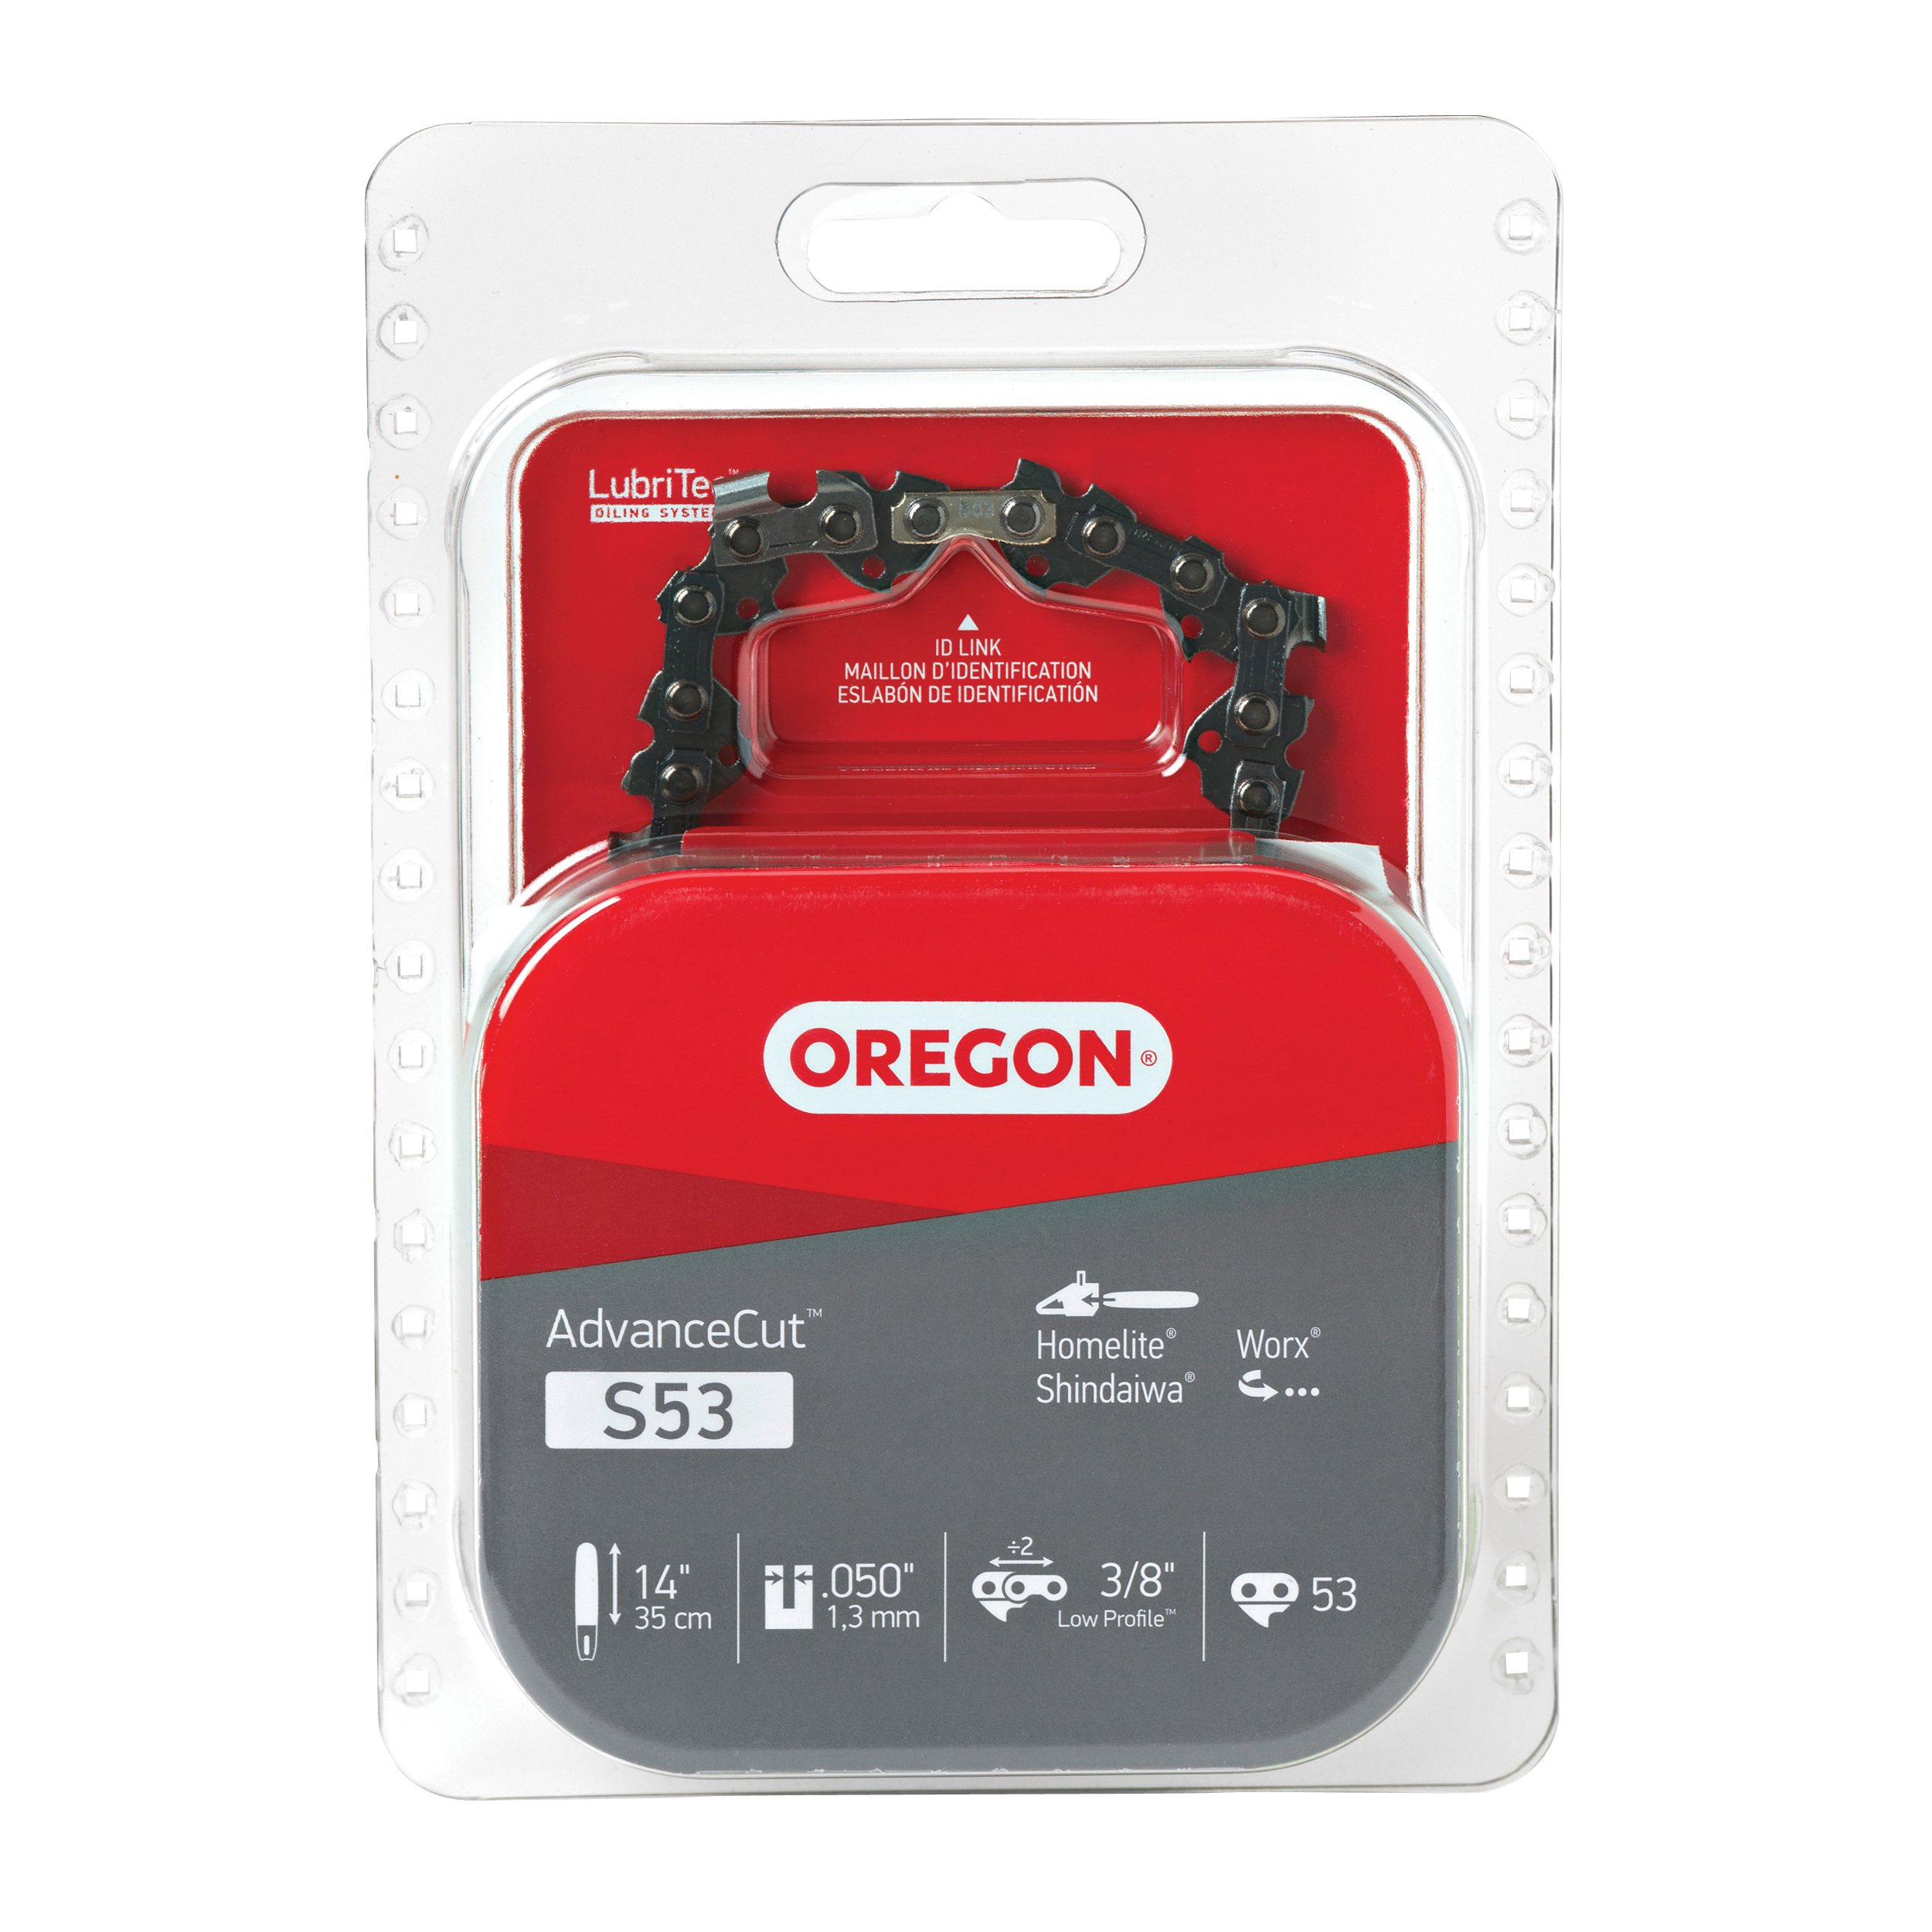 Picture of Oregon S53 Chainsaw Chain, 14 in L Bar, 0.05 Gauge, 3/8 in TPI/Pitch, 53 -Link